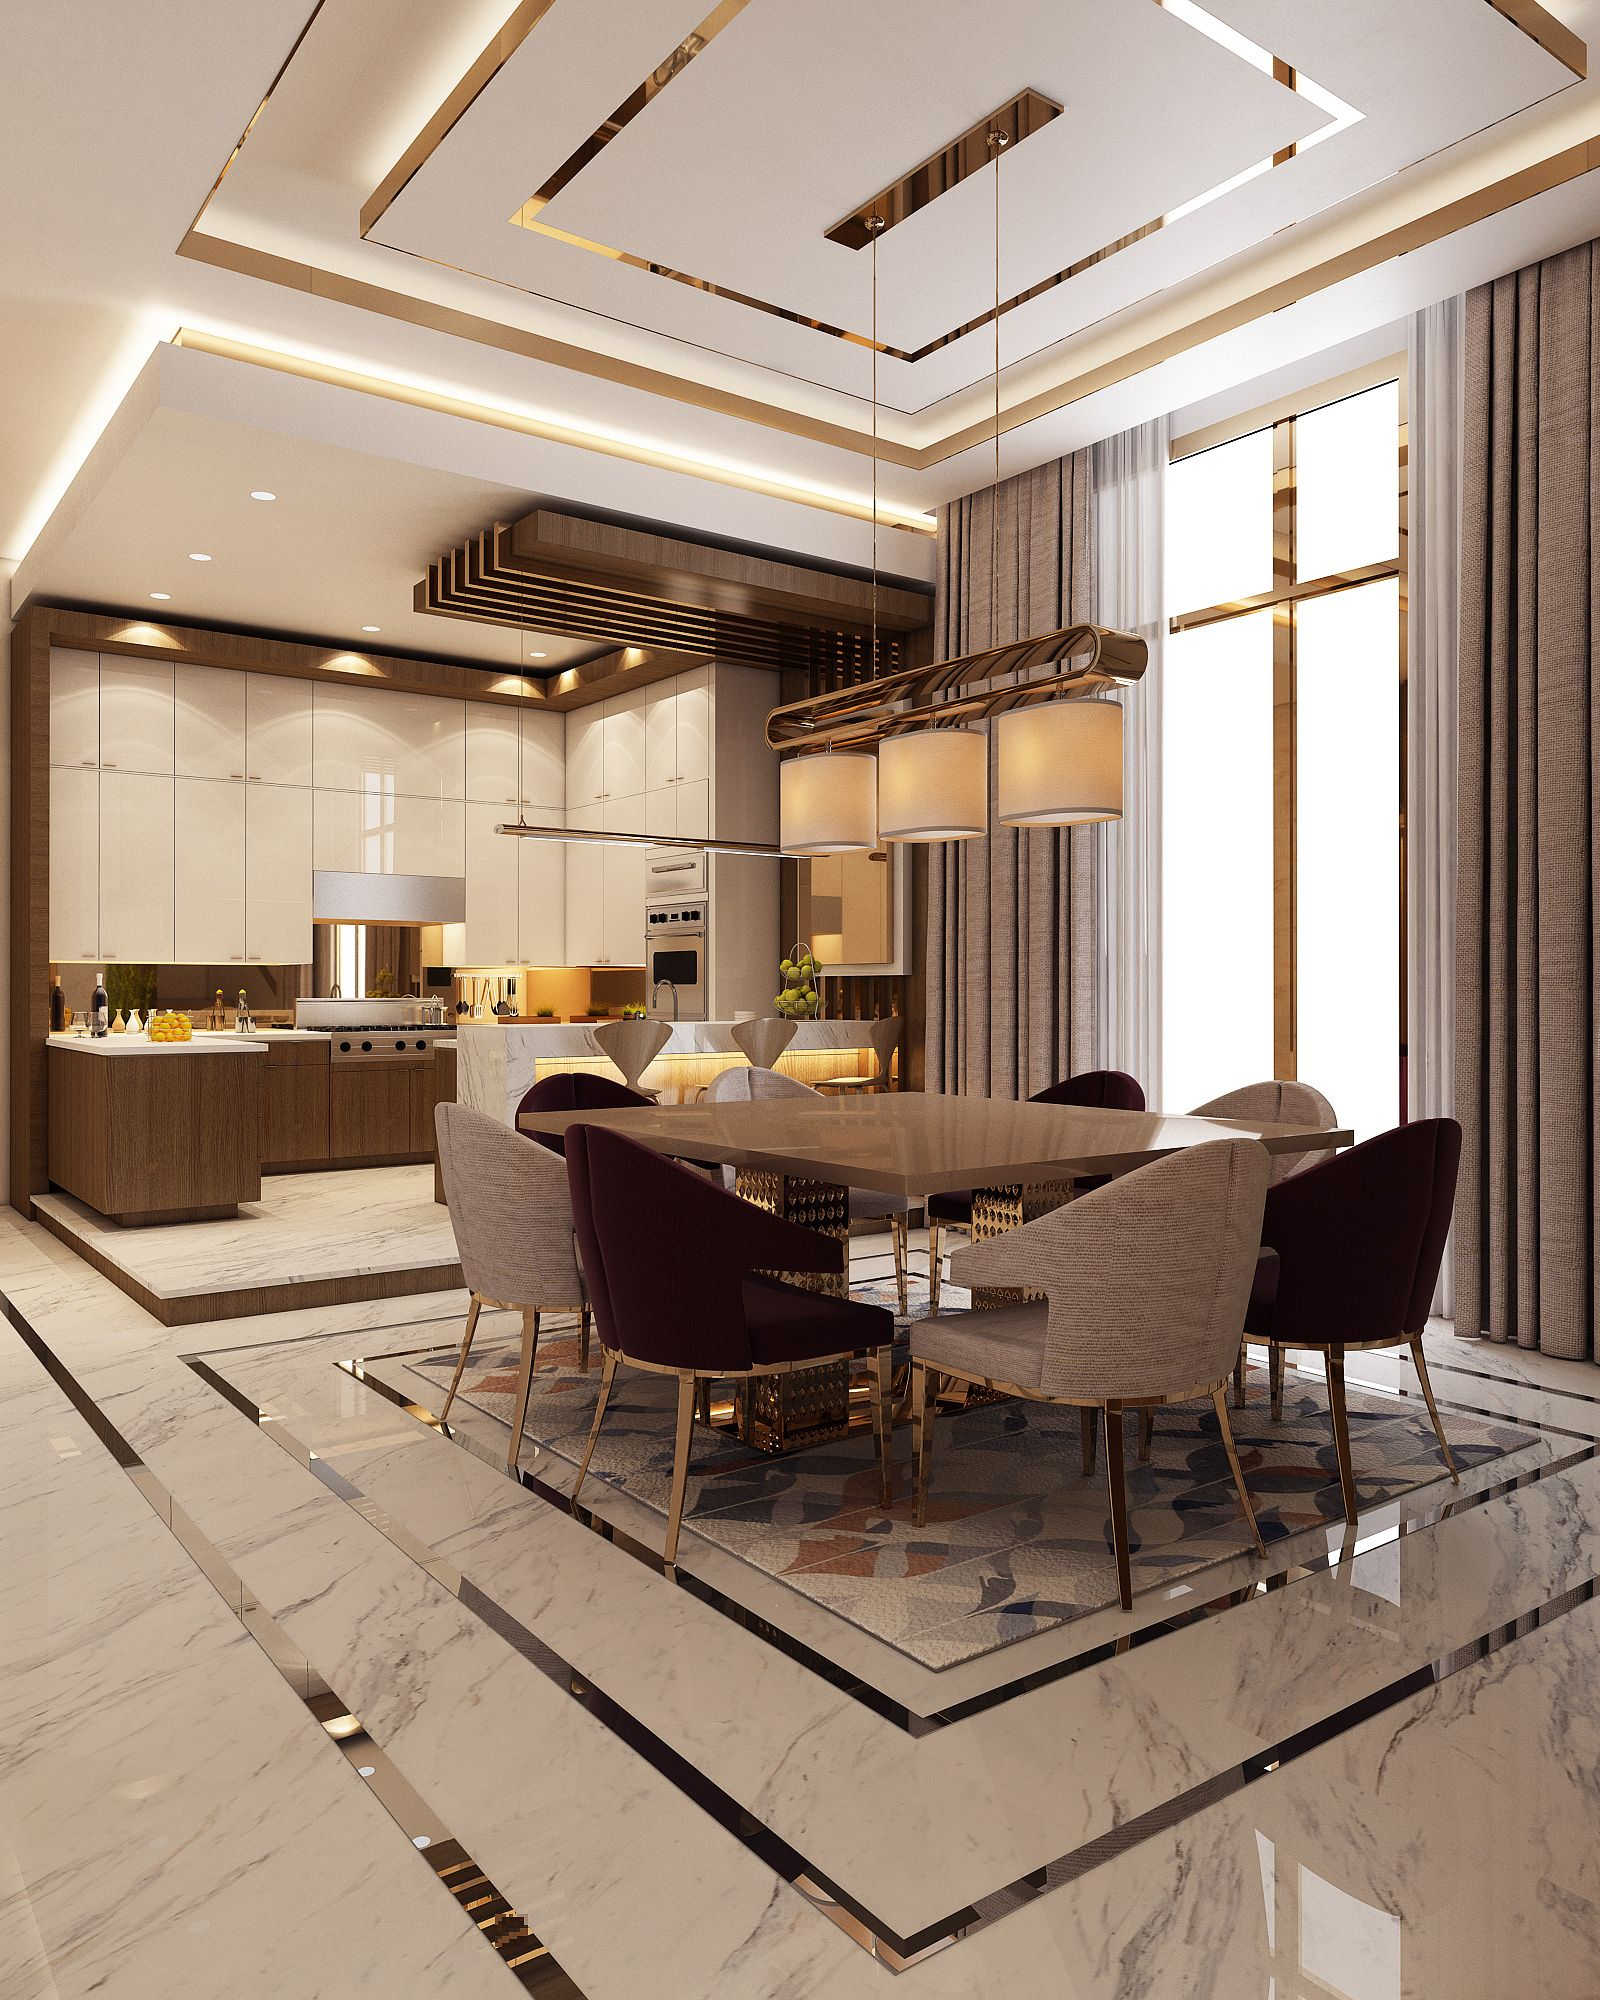 Luxury Modern Villa Qatar On Behance Luxury Dining Room